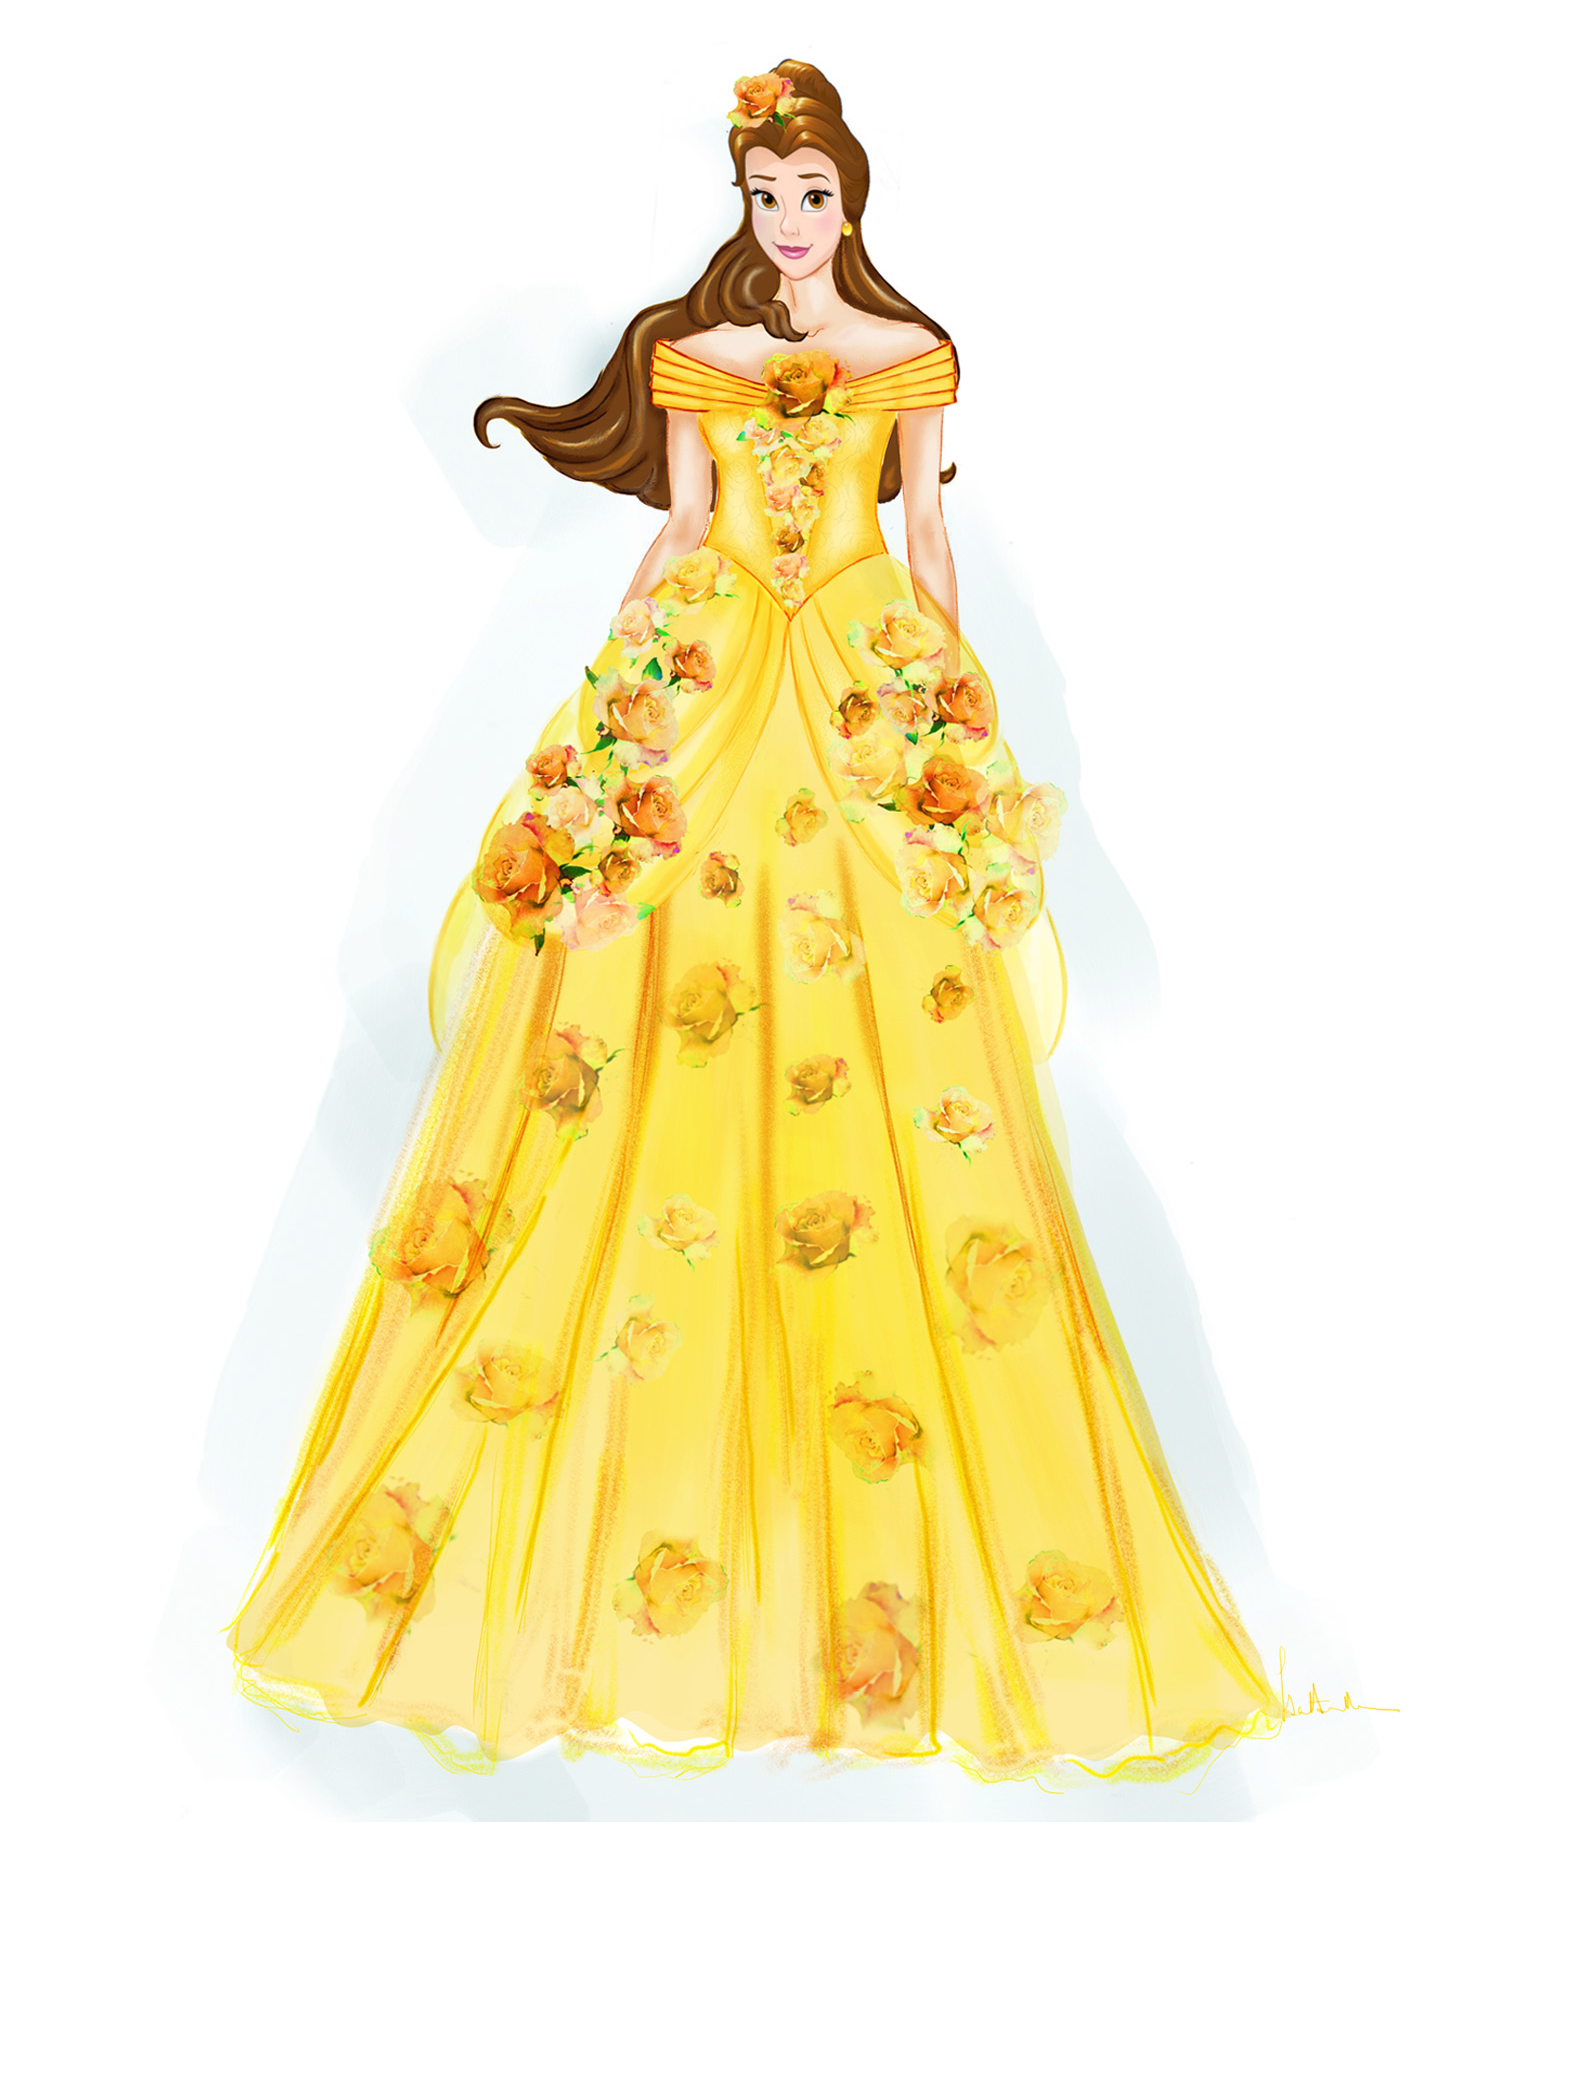 Belle's dress for the Pirates and Princess festival